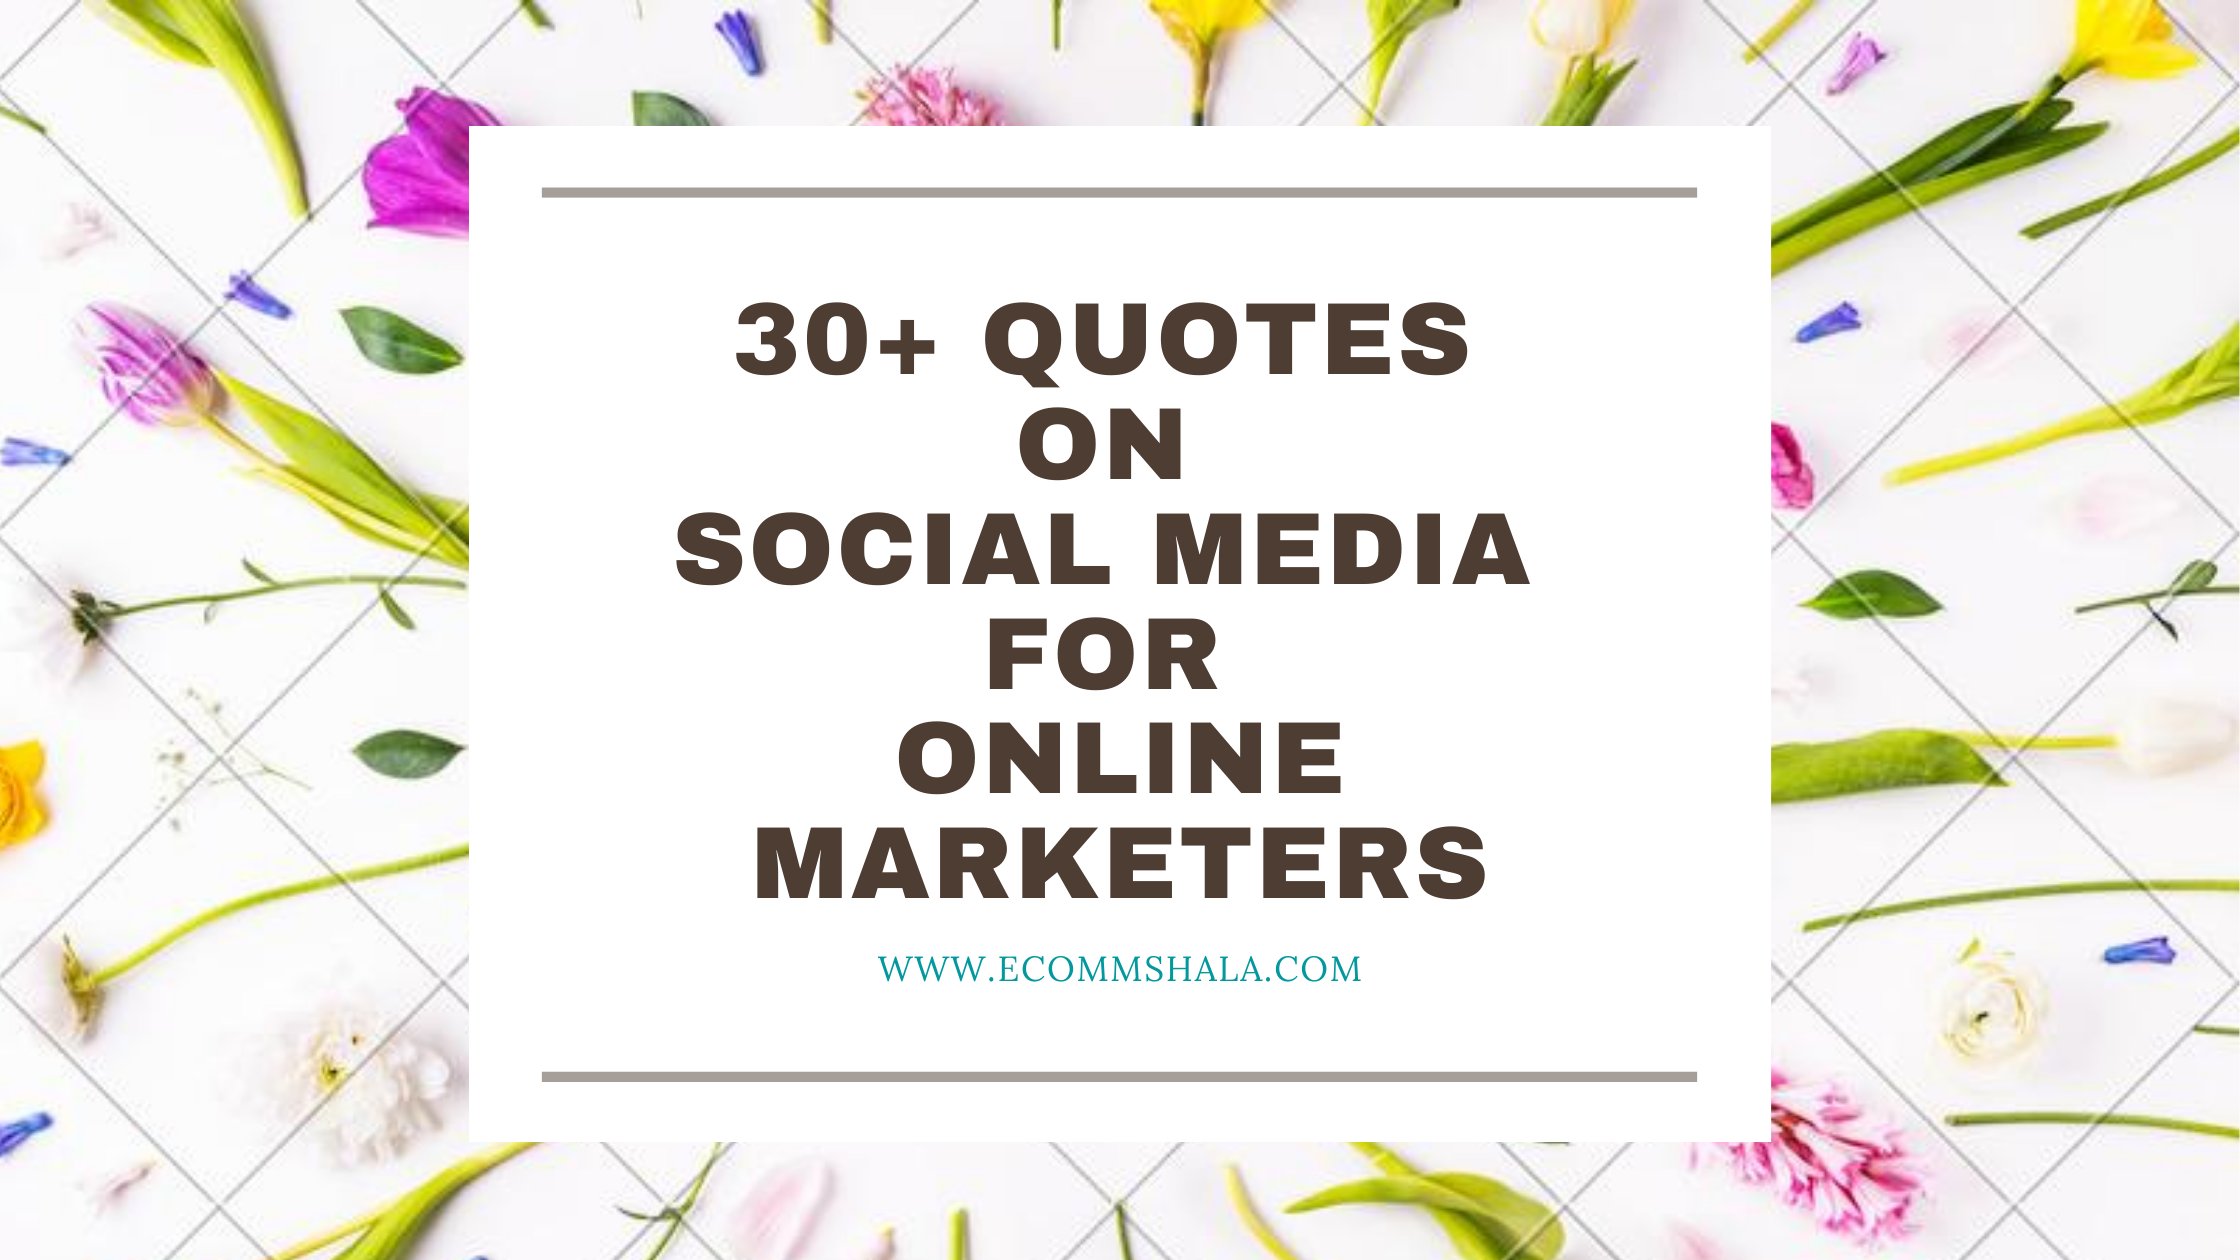 30+ Quotes on Social Media For Online Marketers